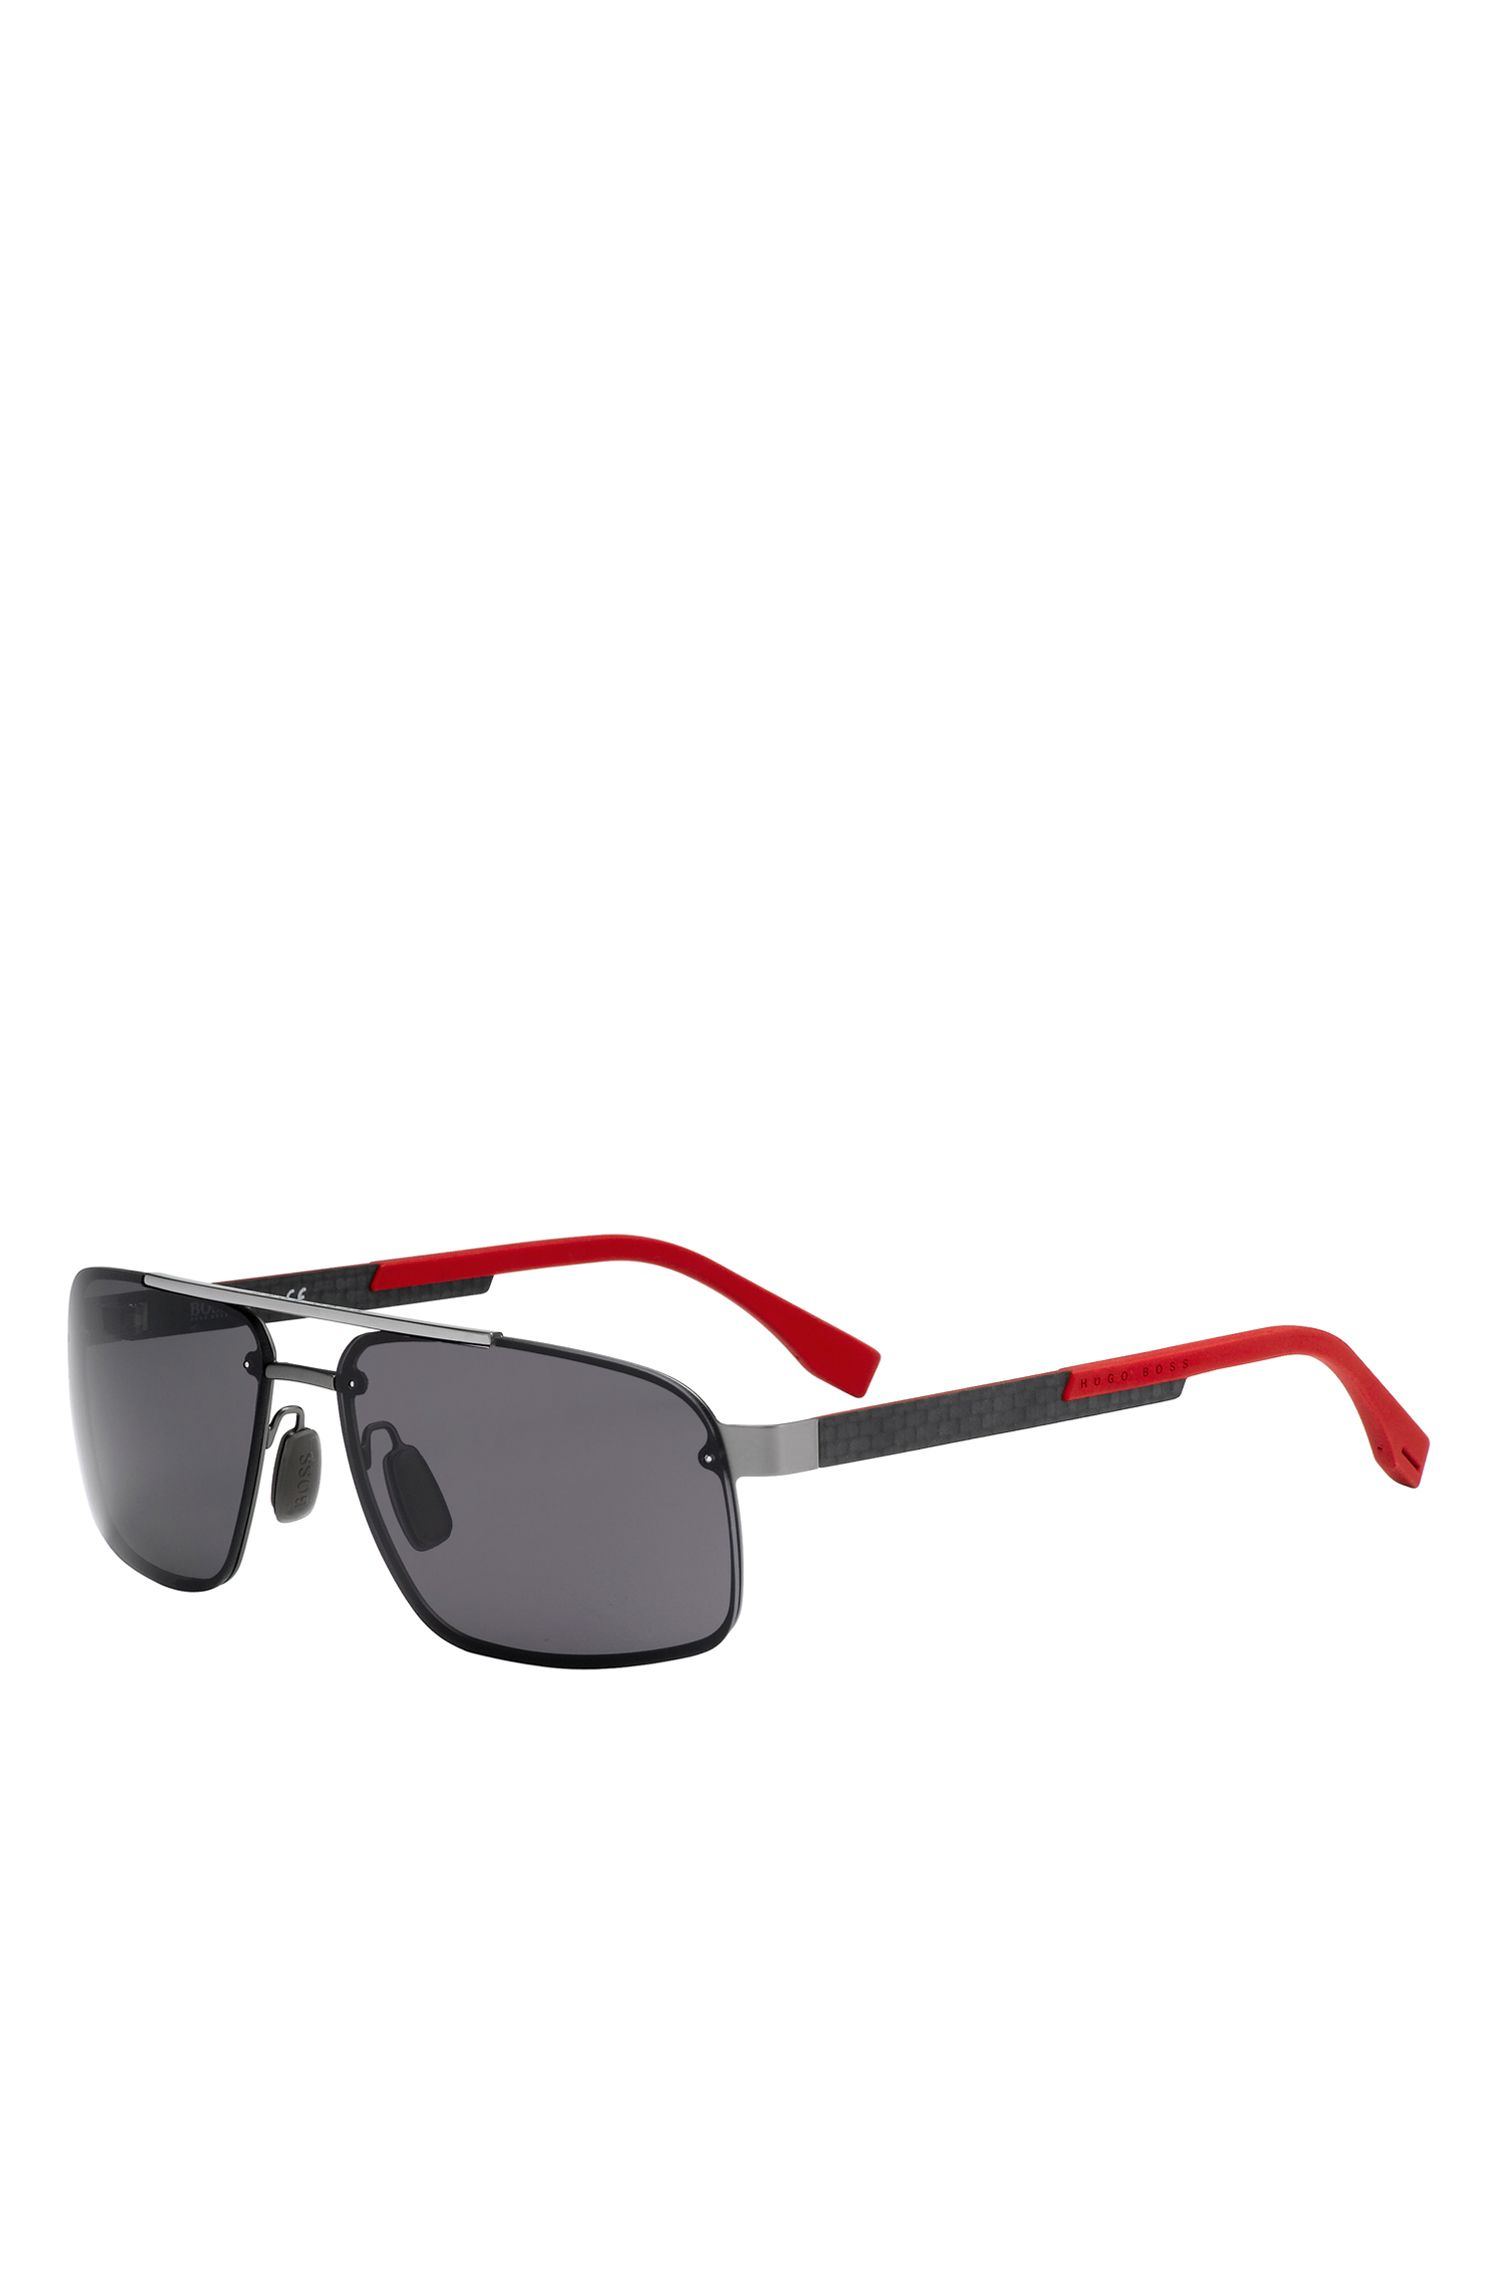 'BOSS 0773' | Polar Gray Lens Navigator Sunglasses